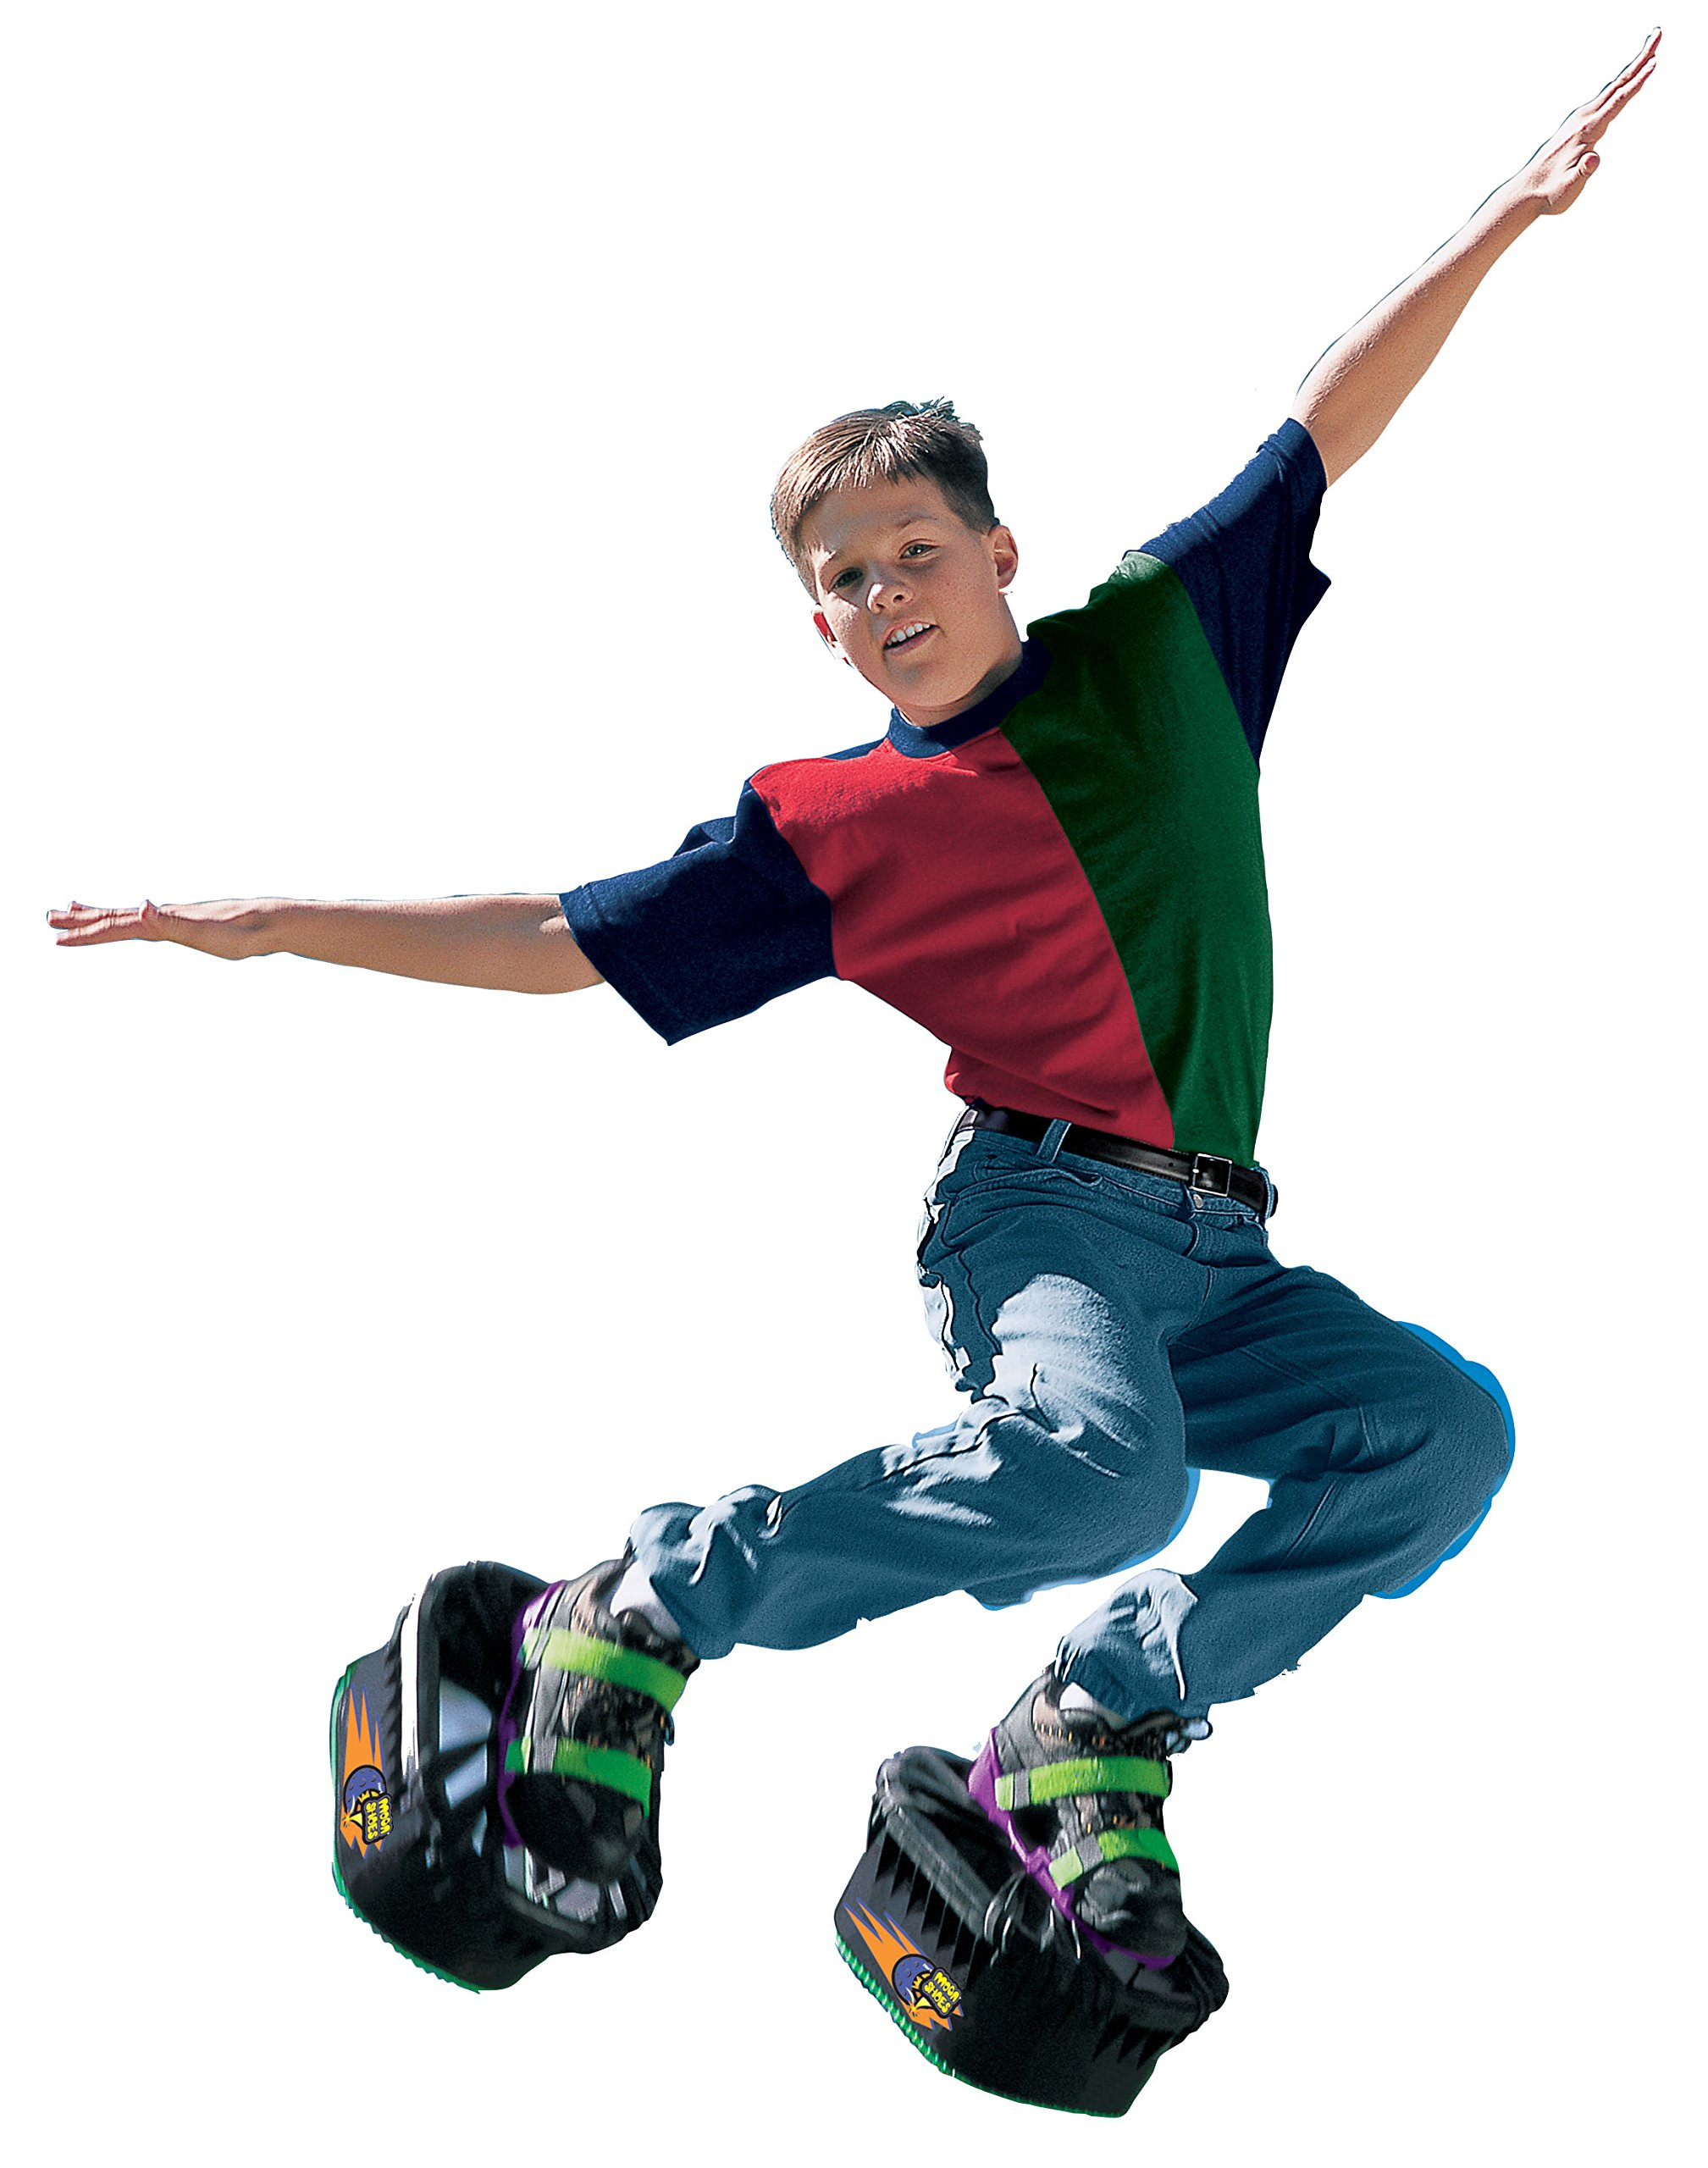 Big Time Toys Moon Shoes Bouncy Shoes - Mini Trampolines For your Feet - One Size